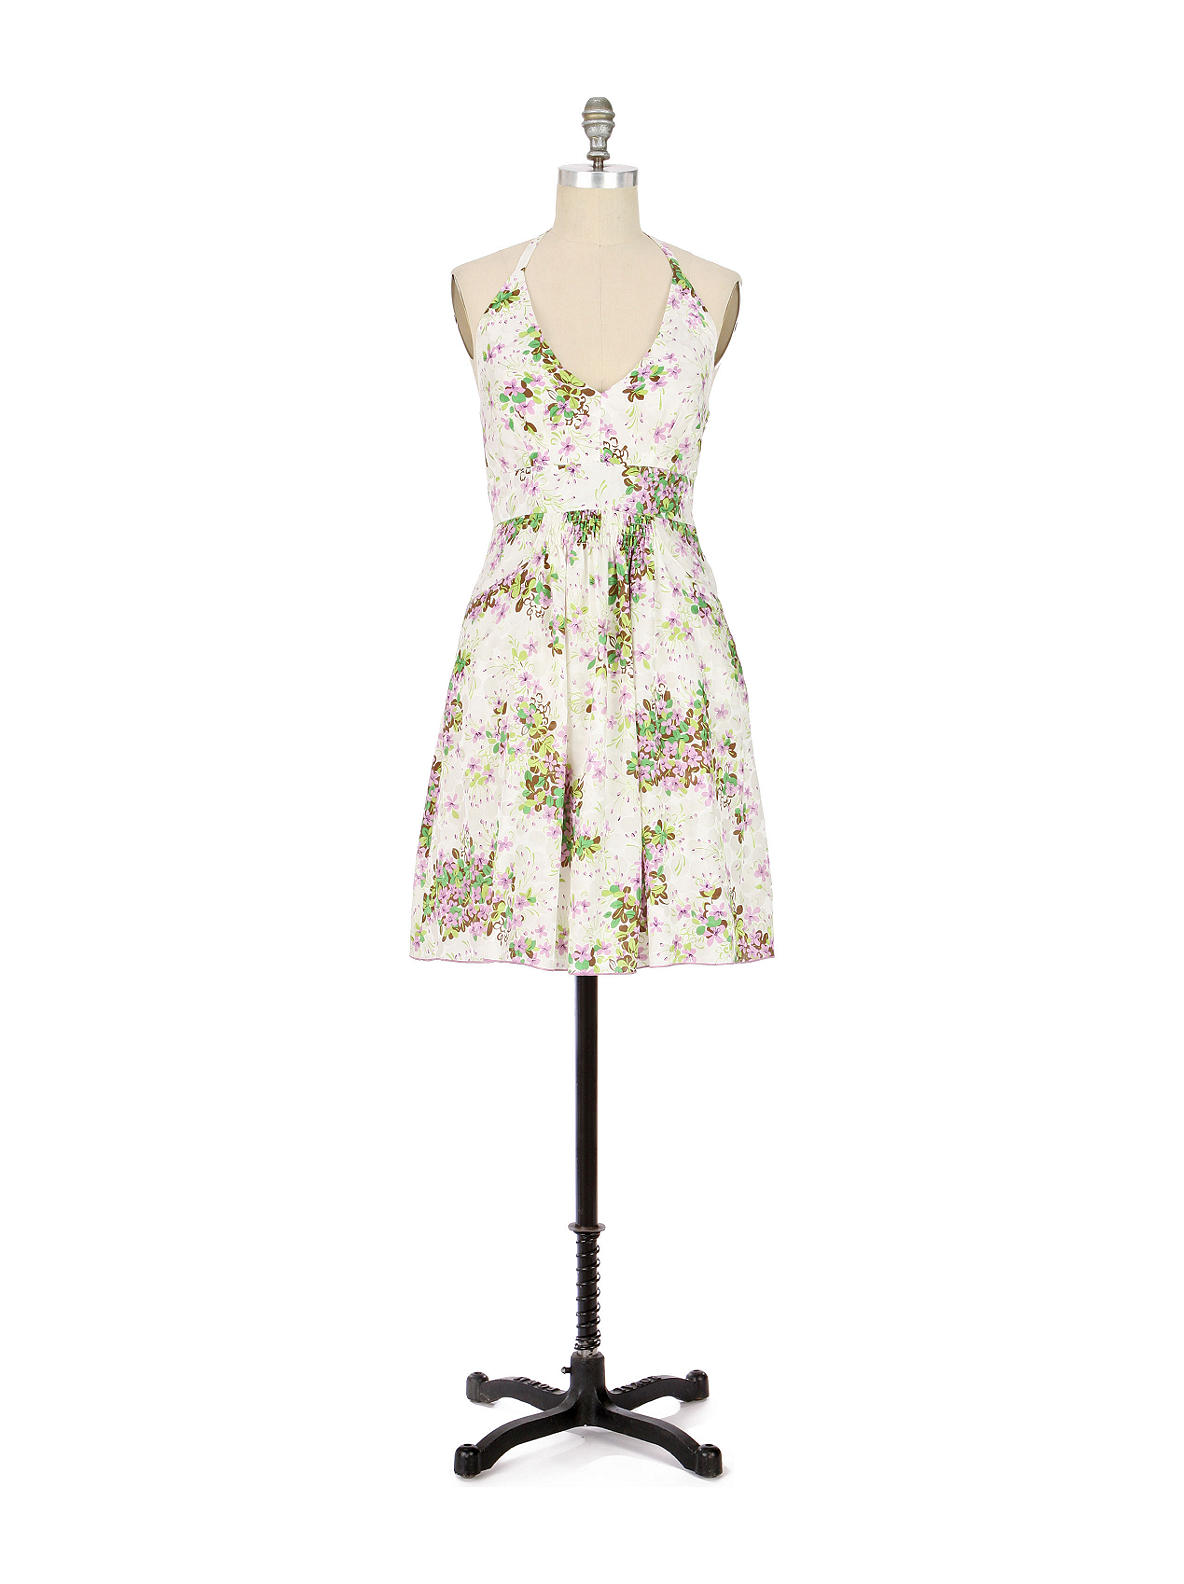 Anna Sui for Anthropologie - Hidden Grove Dress - Anthropologie.com :  womens halter v-neck a-line